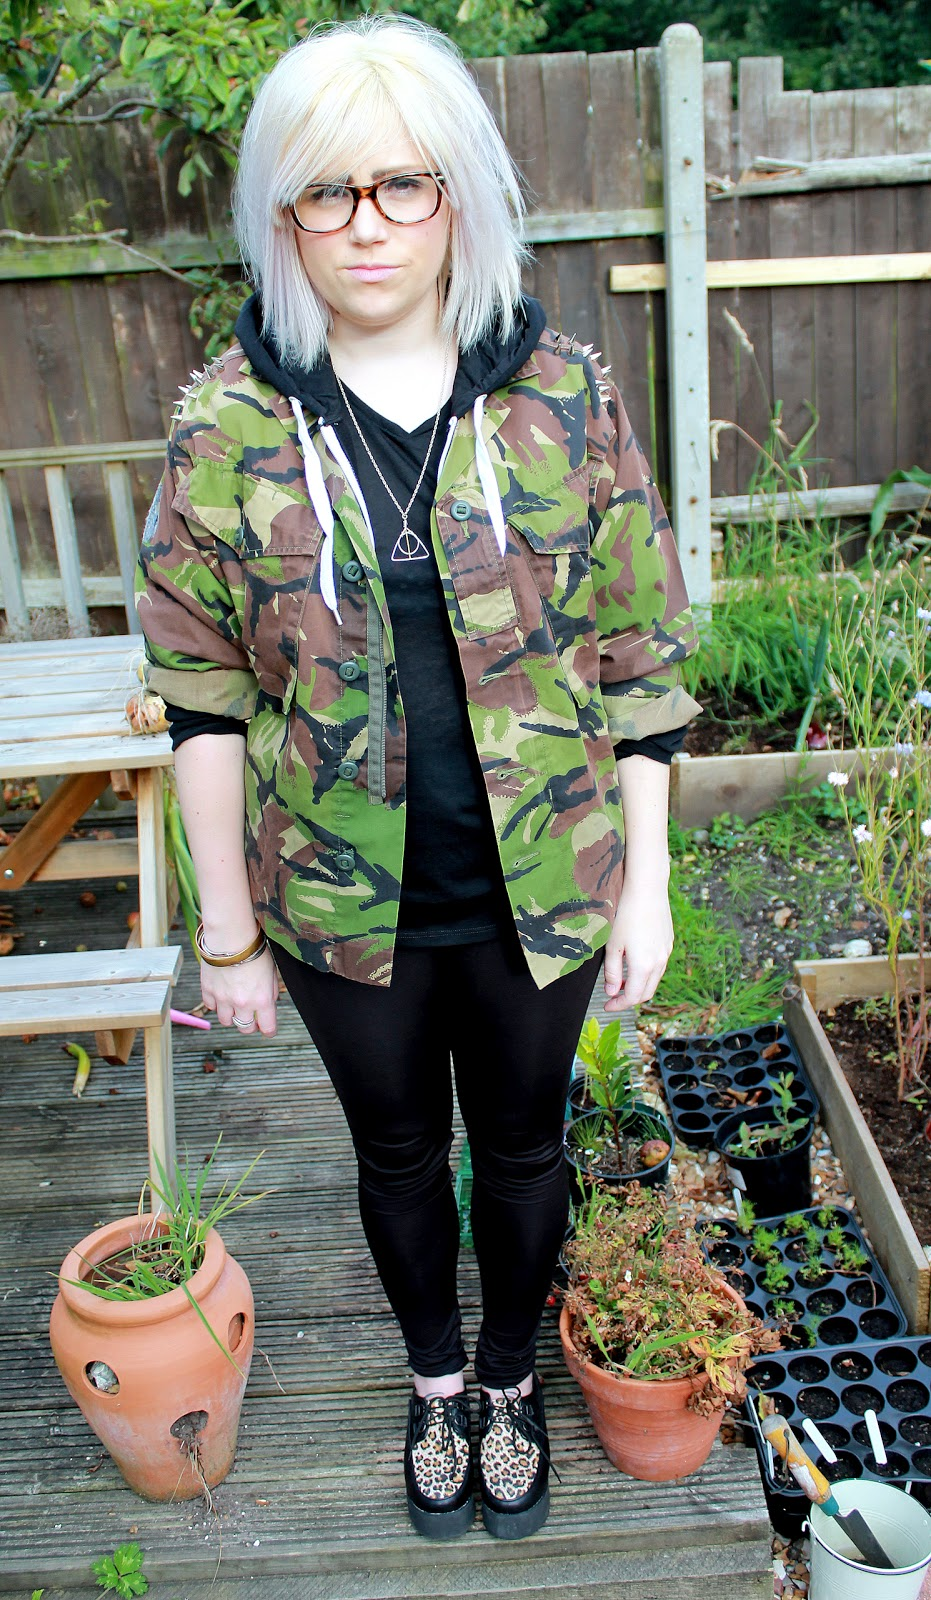 camouflage jacket and creepers